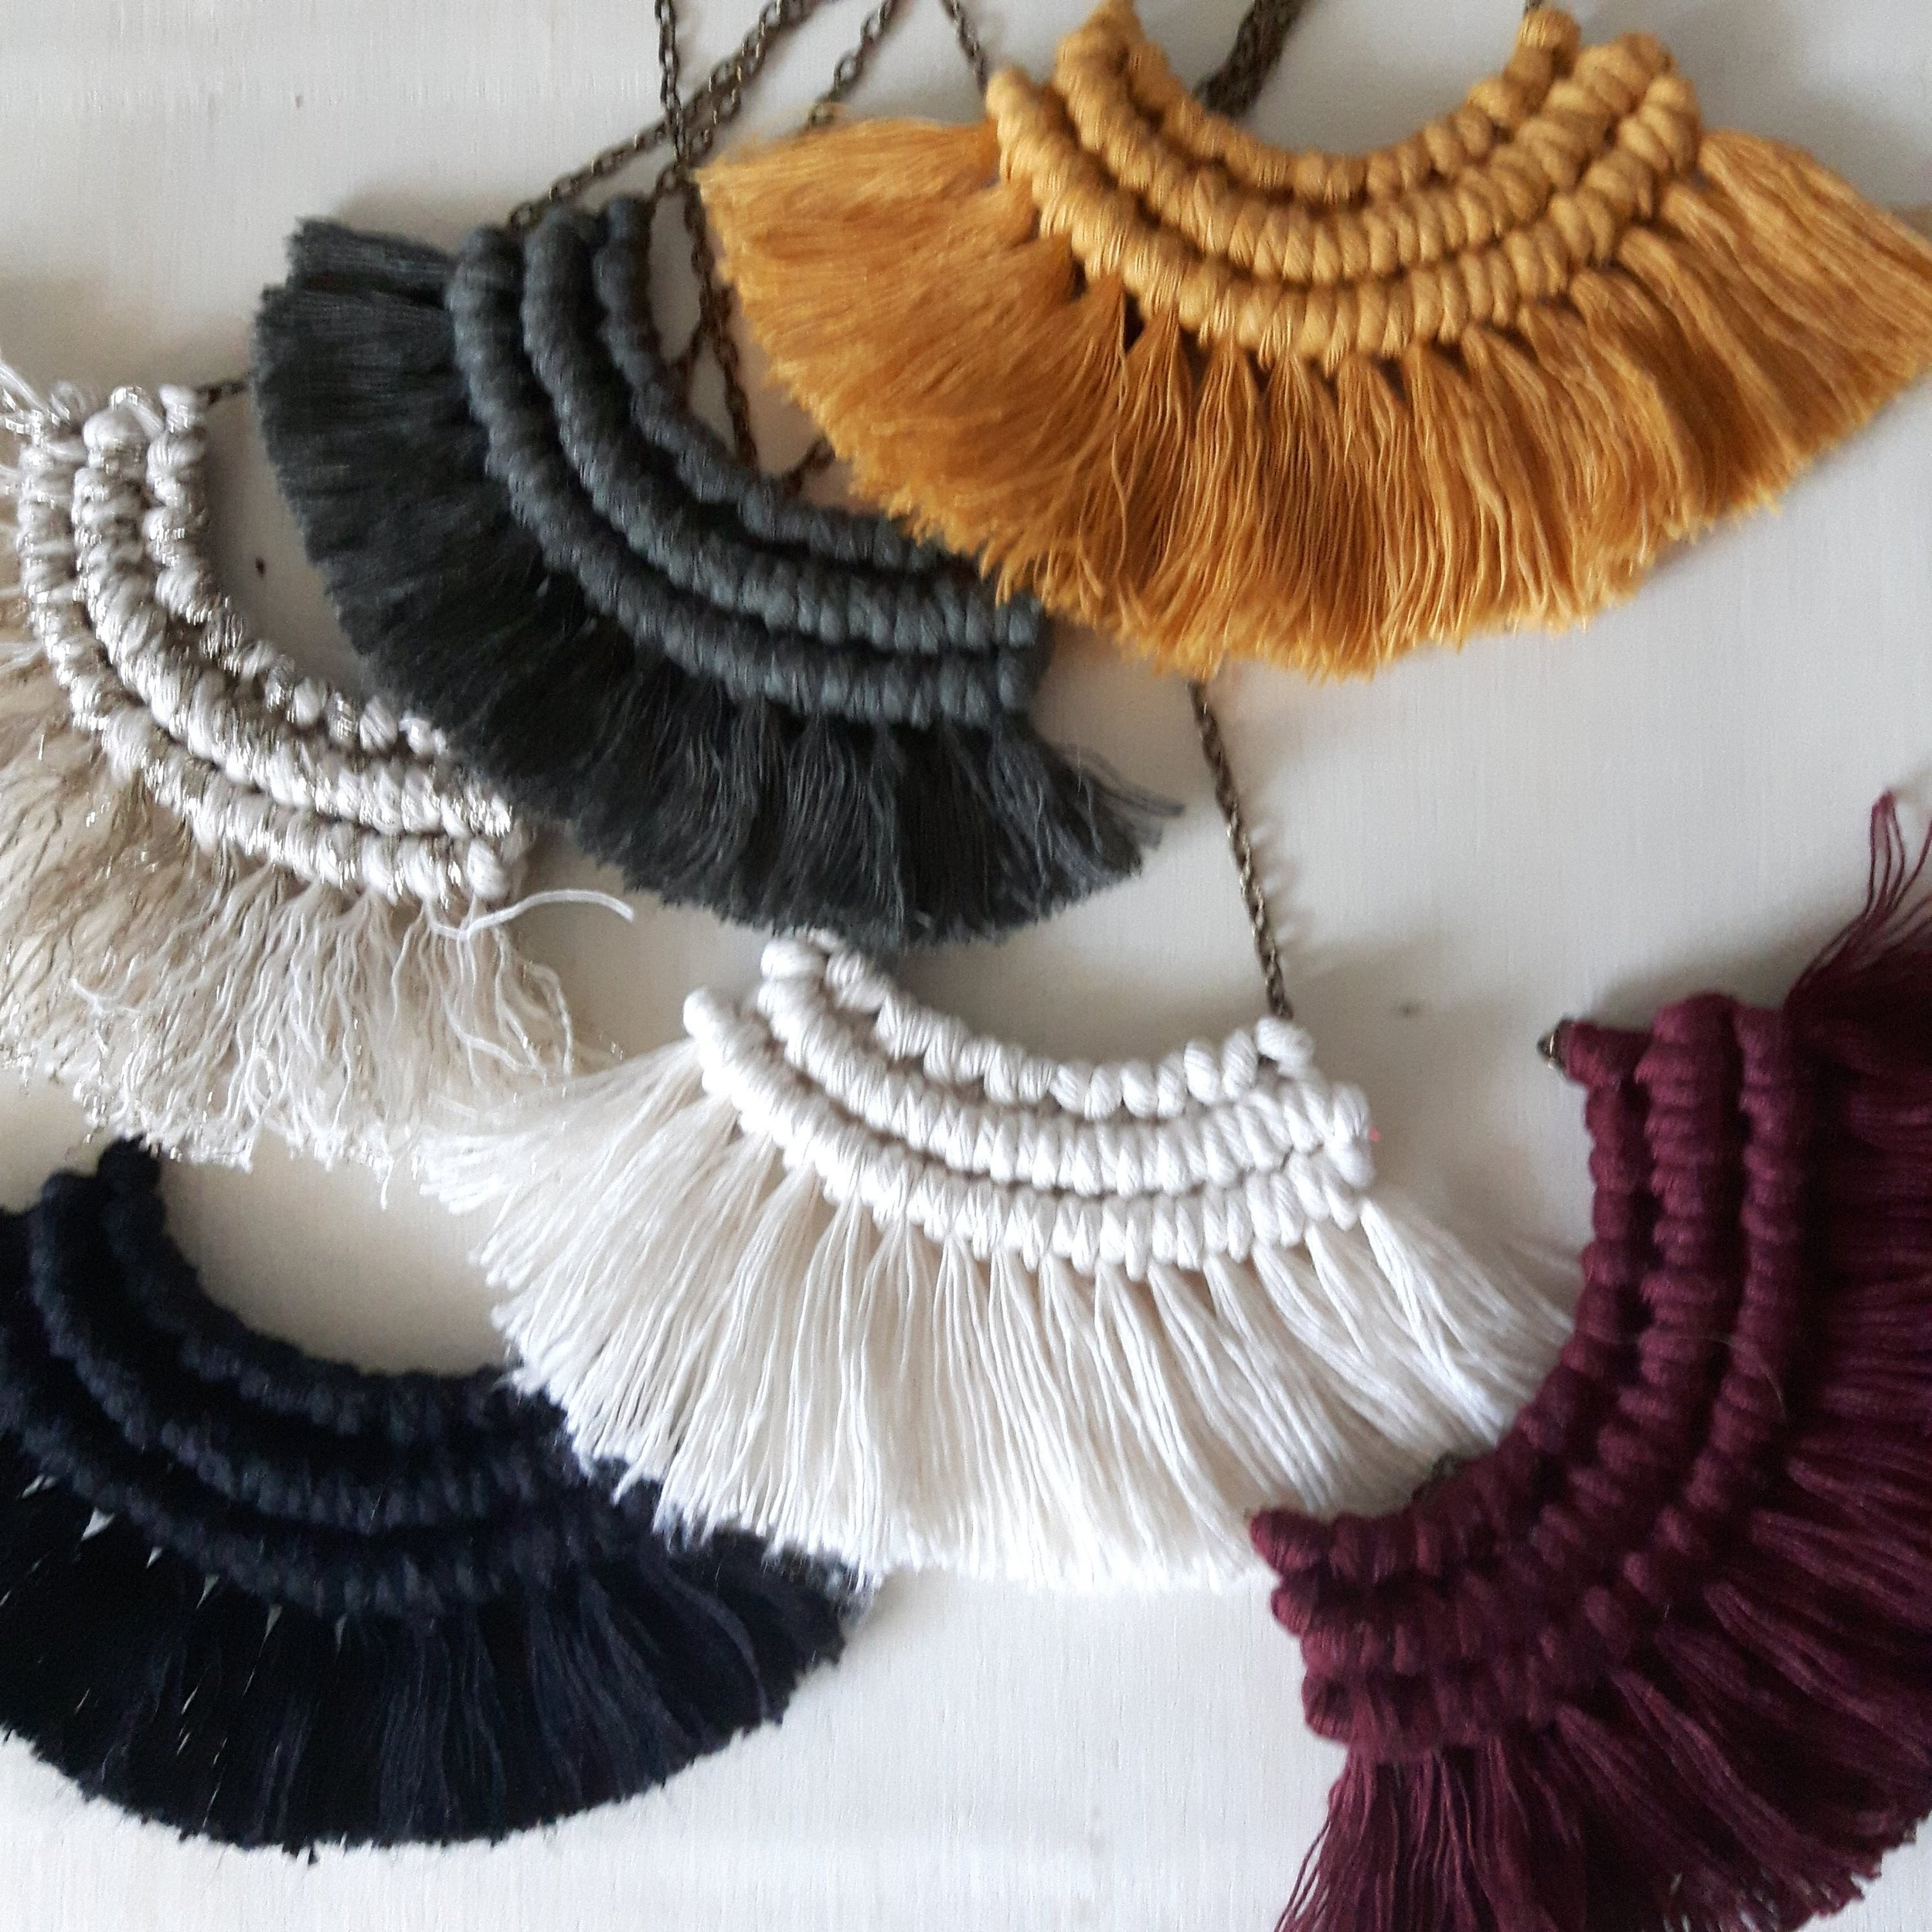 MACRAME NECKLACE WORKSHOP